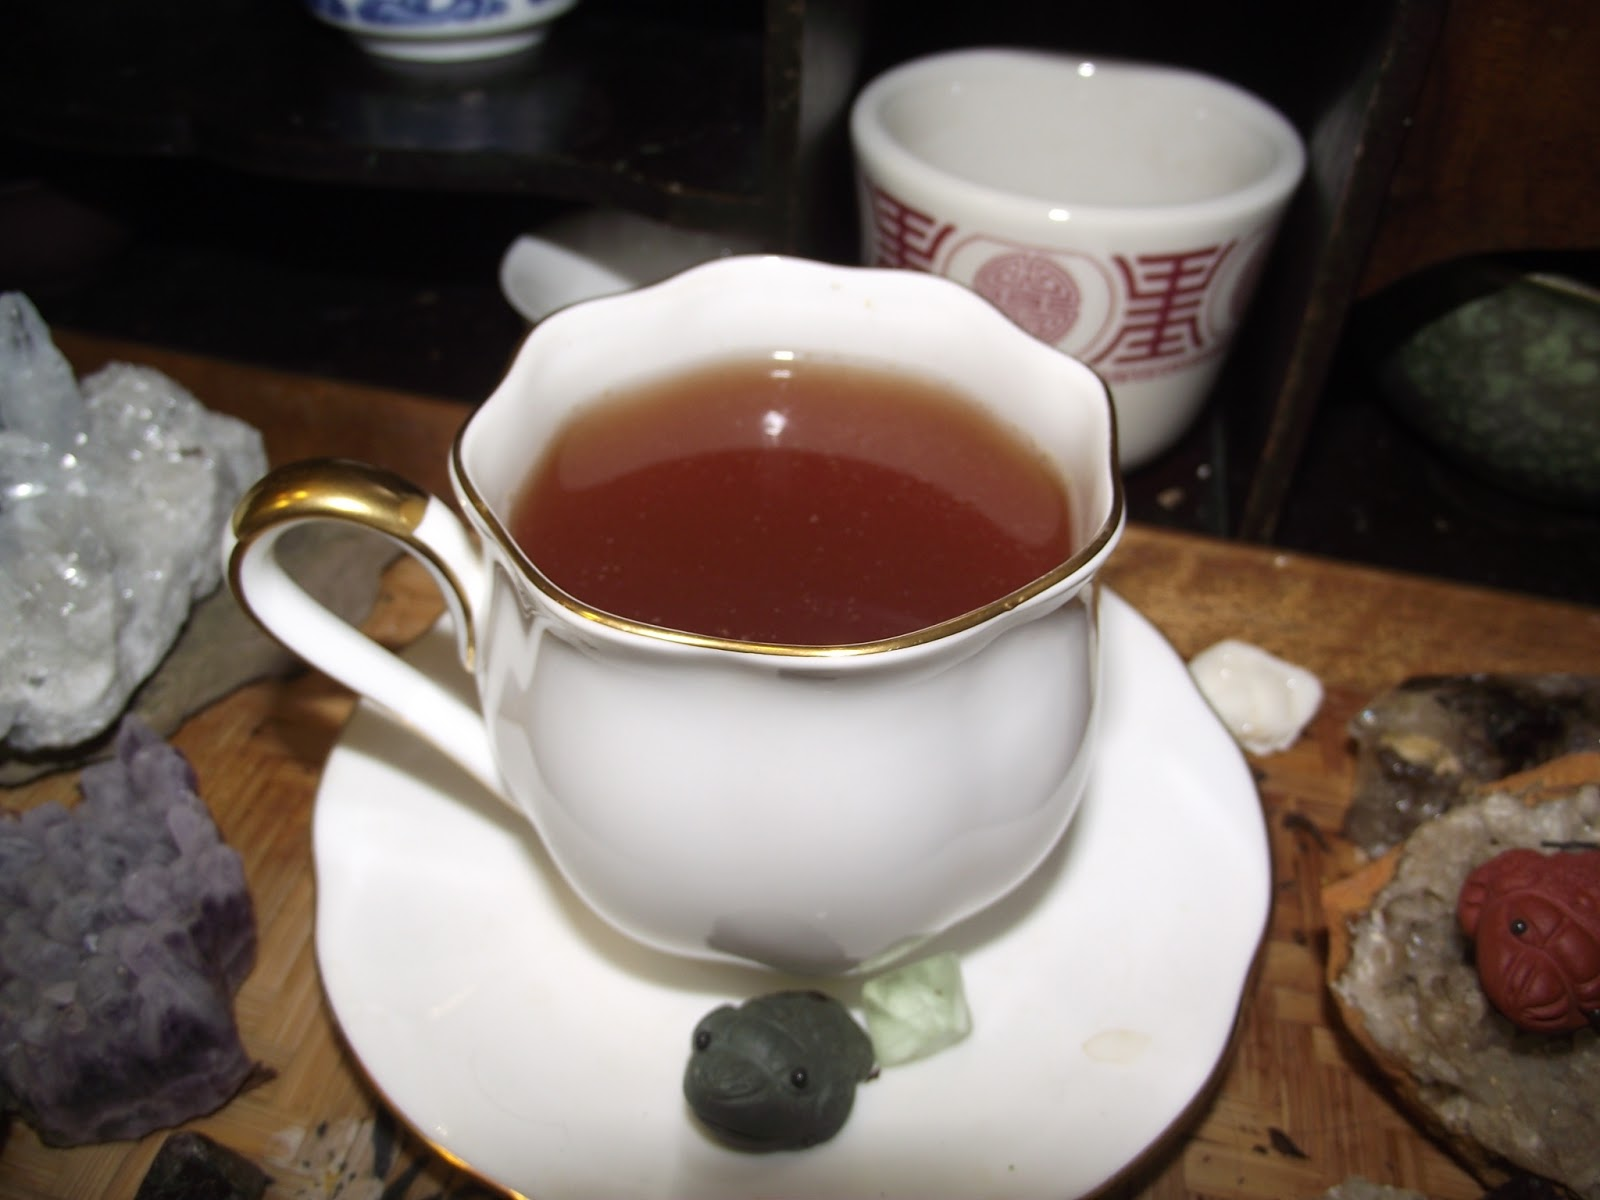 ... and Geekery. : Teaguys: Maple, Bourbon, & Nutmeg (Eggnog) A Tea Review